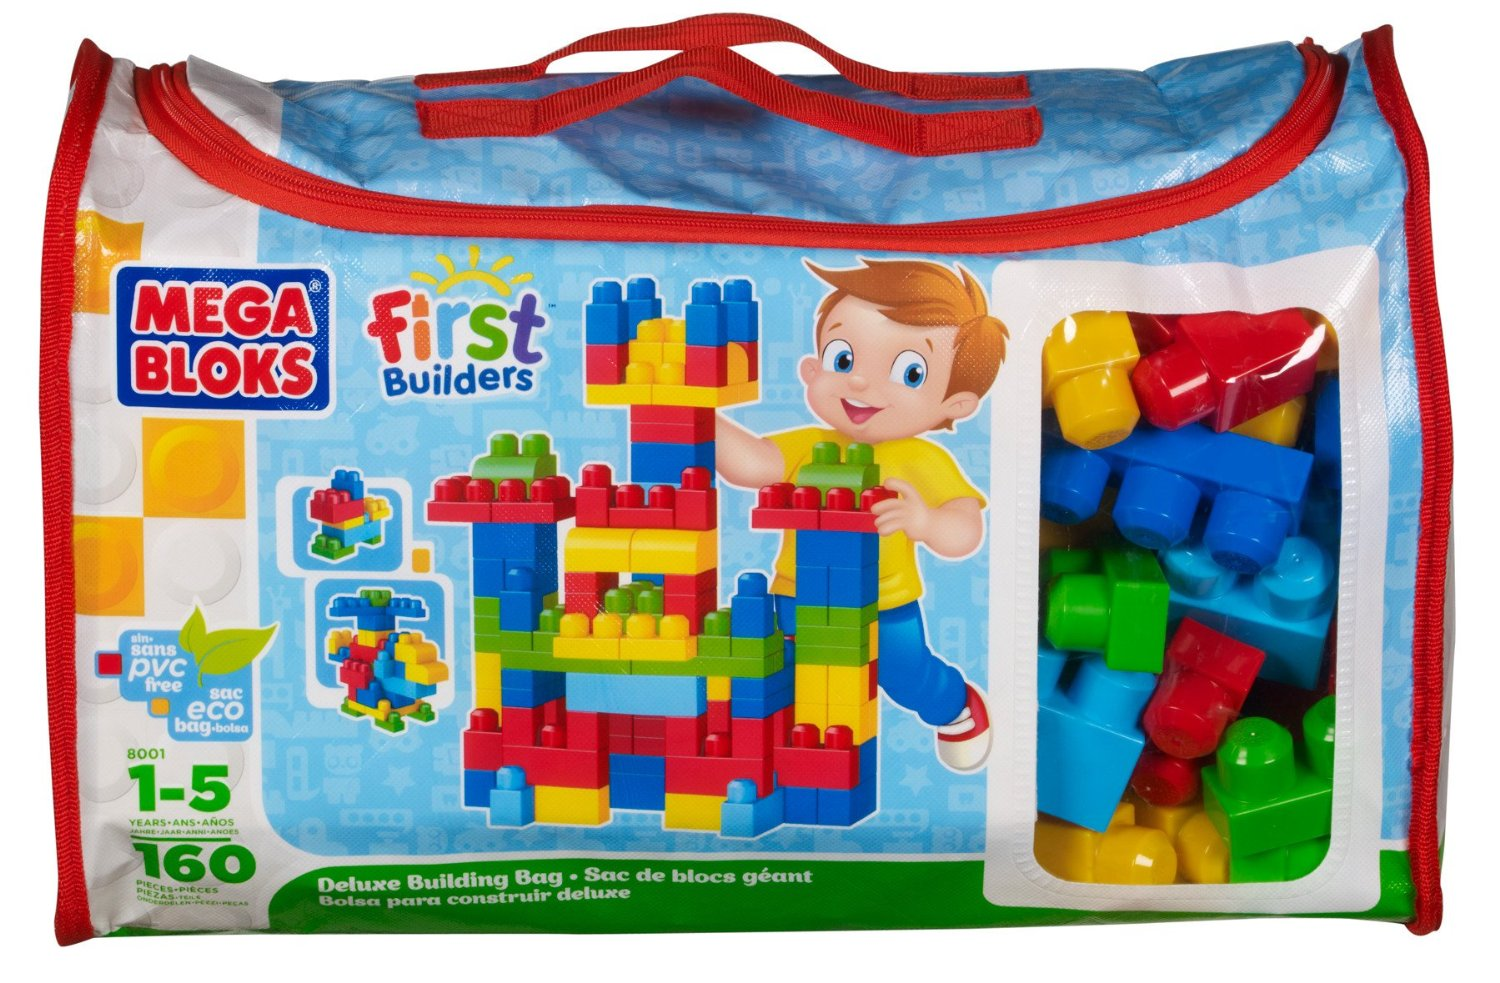 Mega Bloks First Builders Deluxe Building Bag 160-Piece